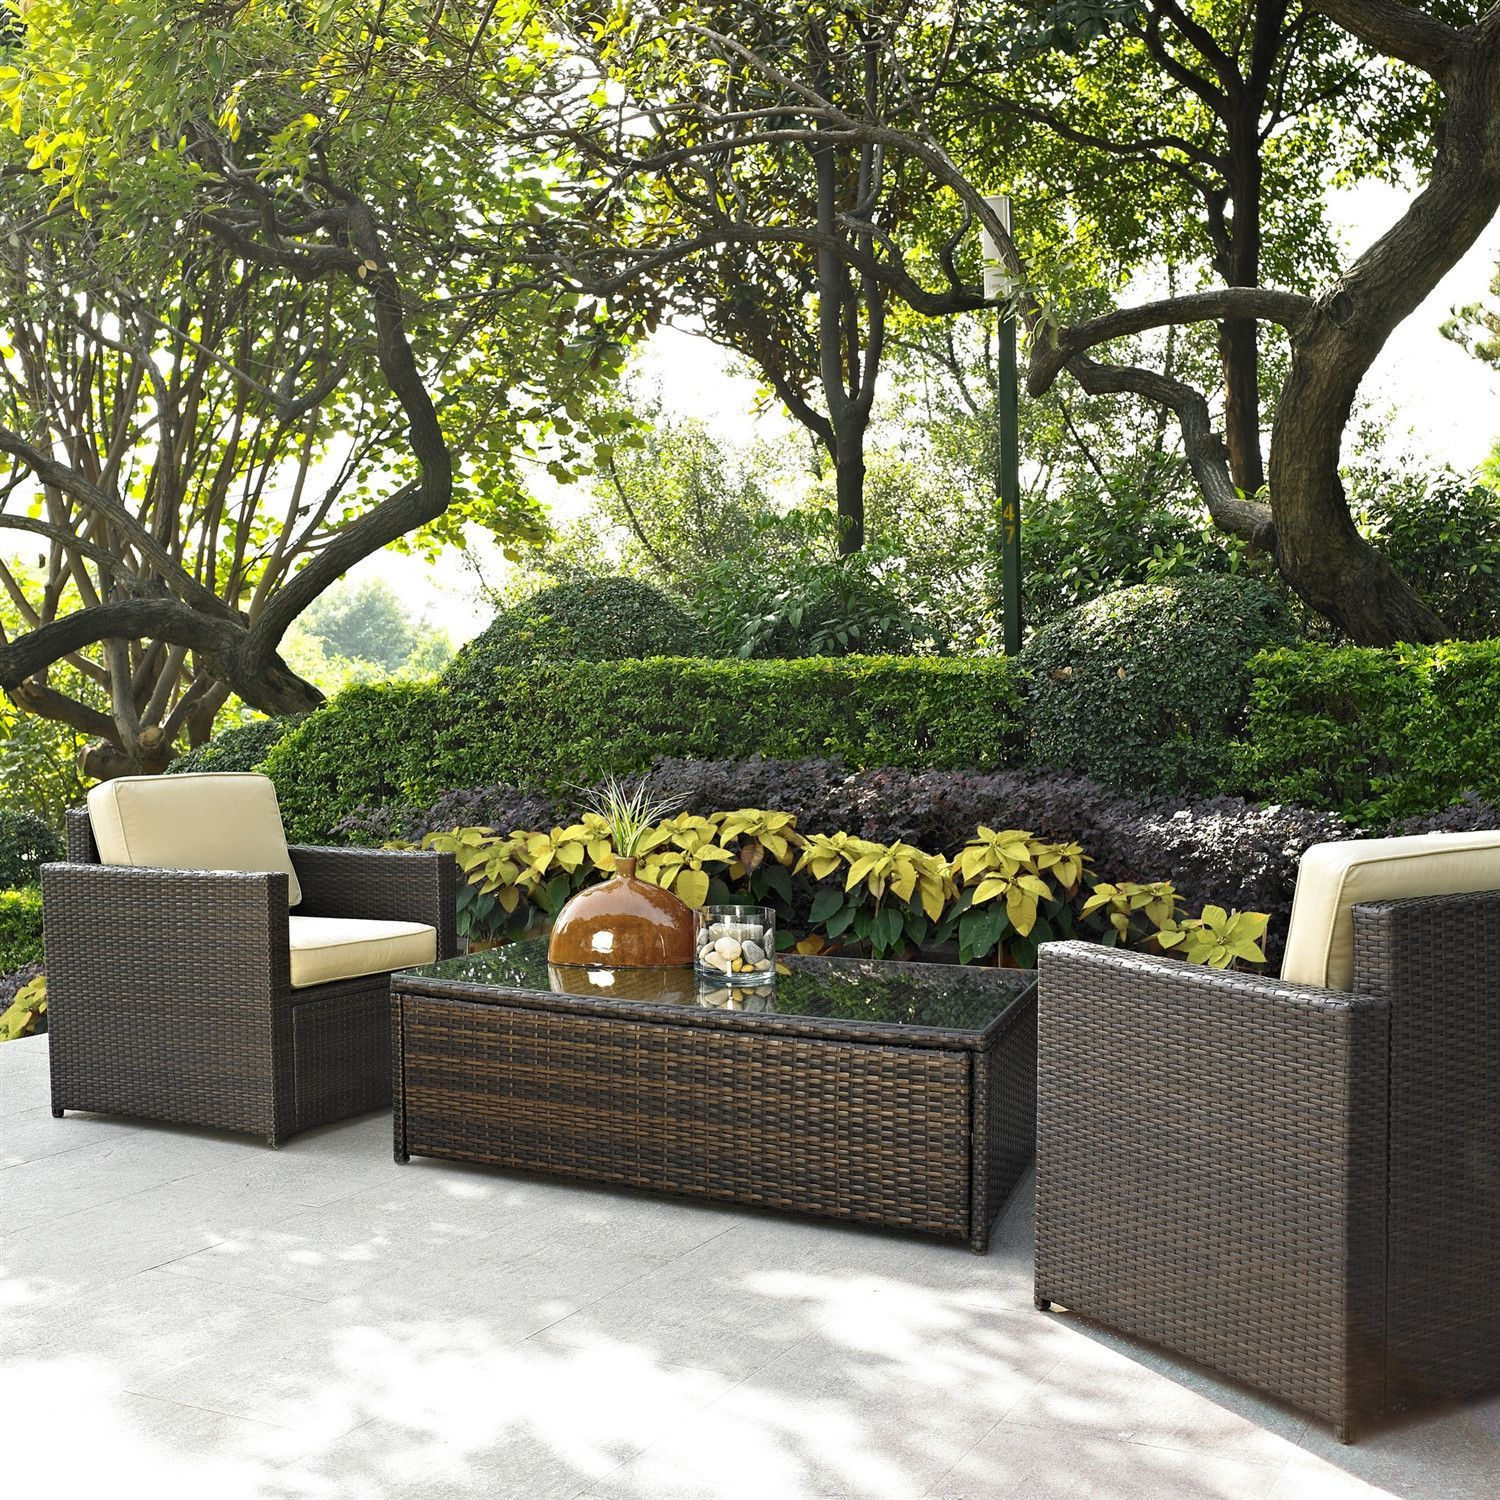 3 Piece Outdoor Wicker Resin Patio Furniture Set With Cushions